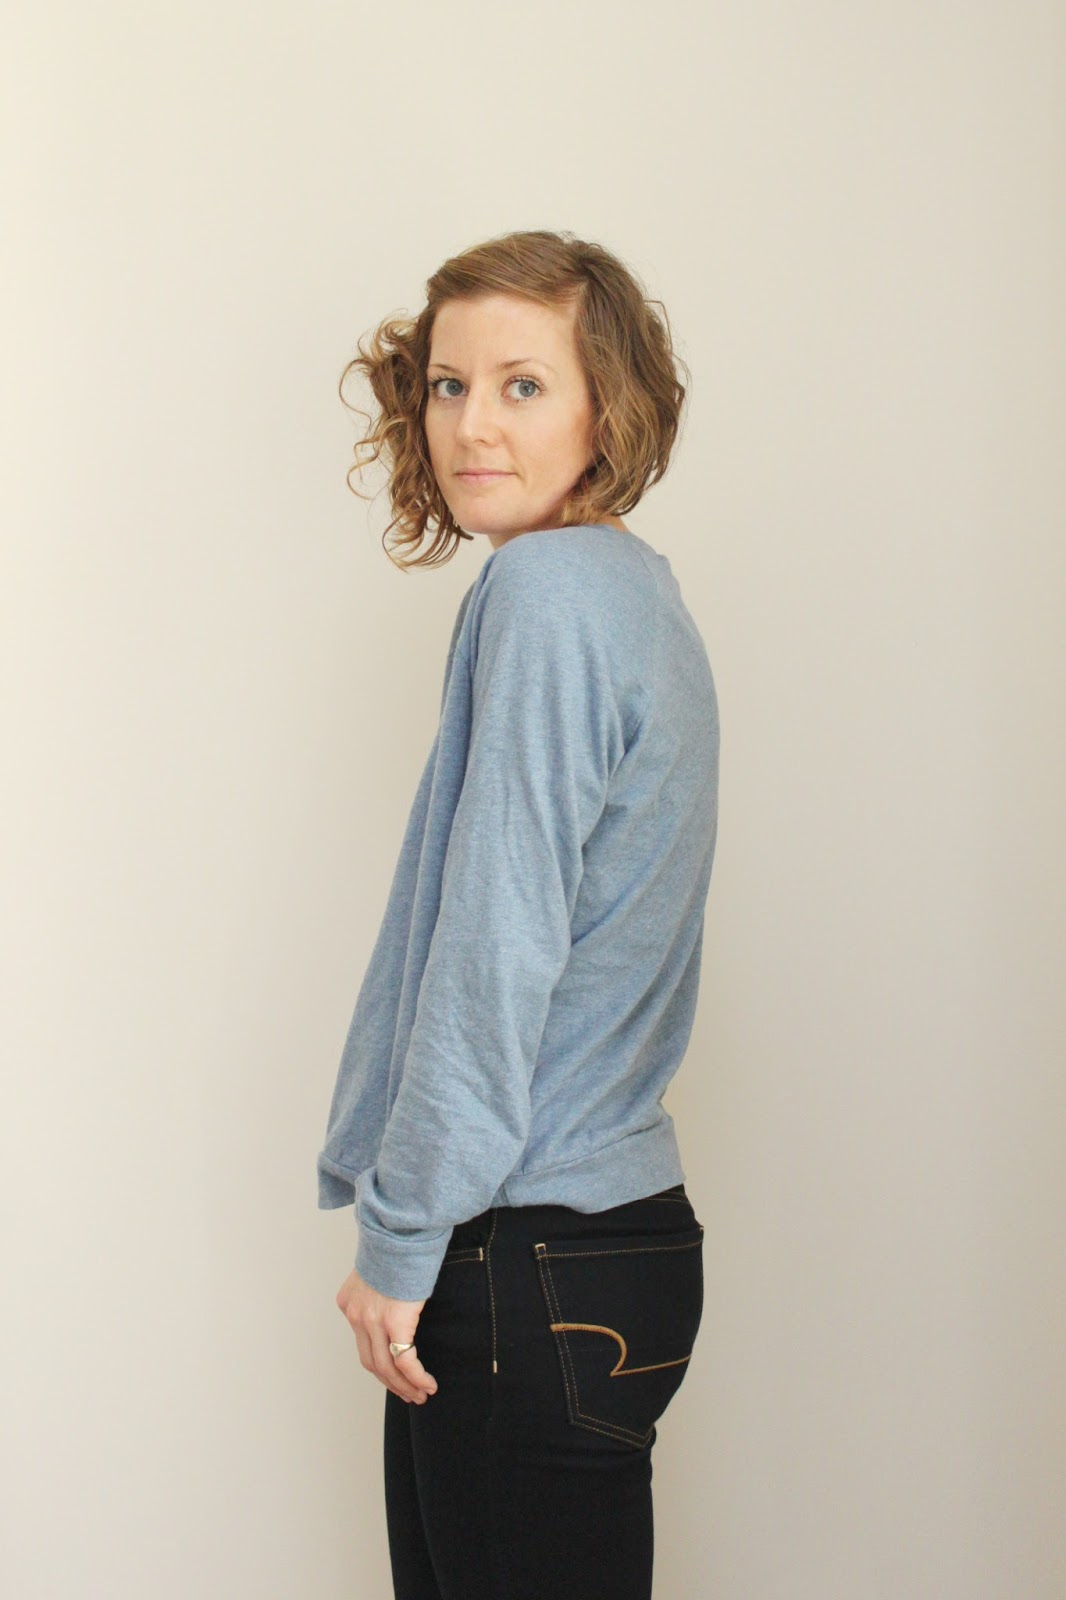 Sewing -- Linden Sweatshirt by Grainline blogged by www.janerichmond.com